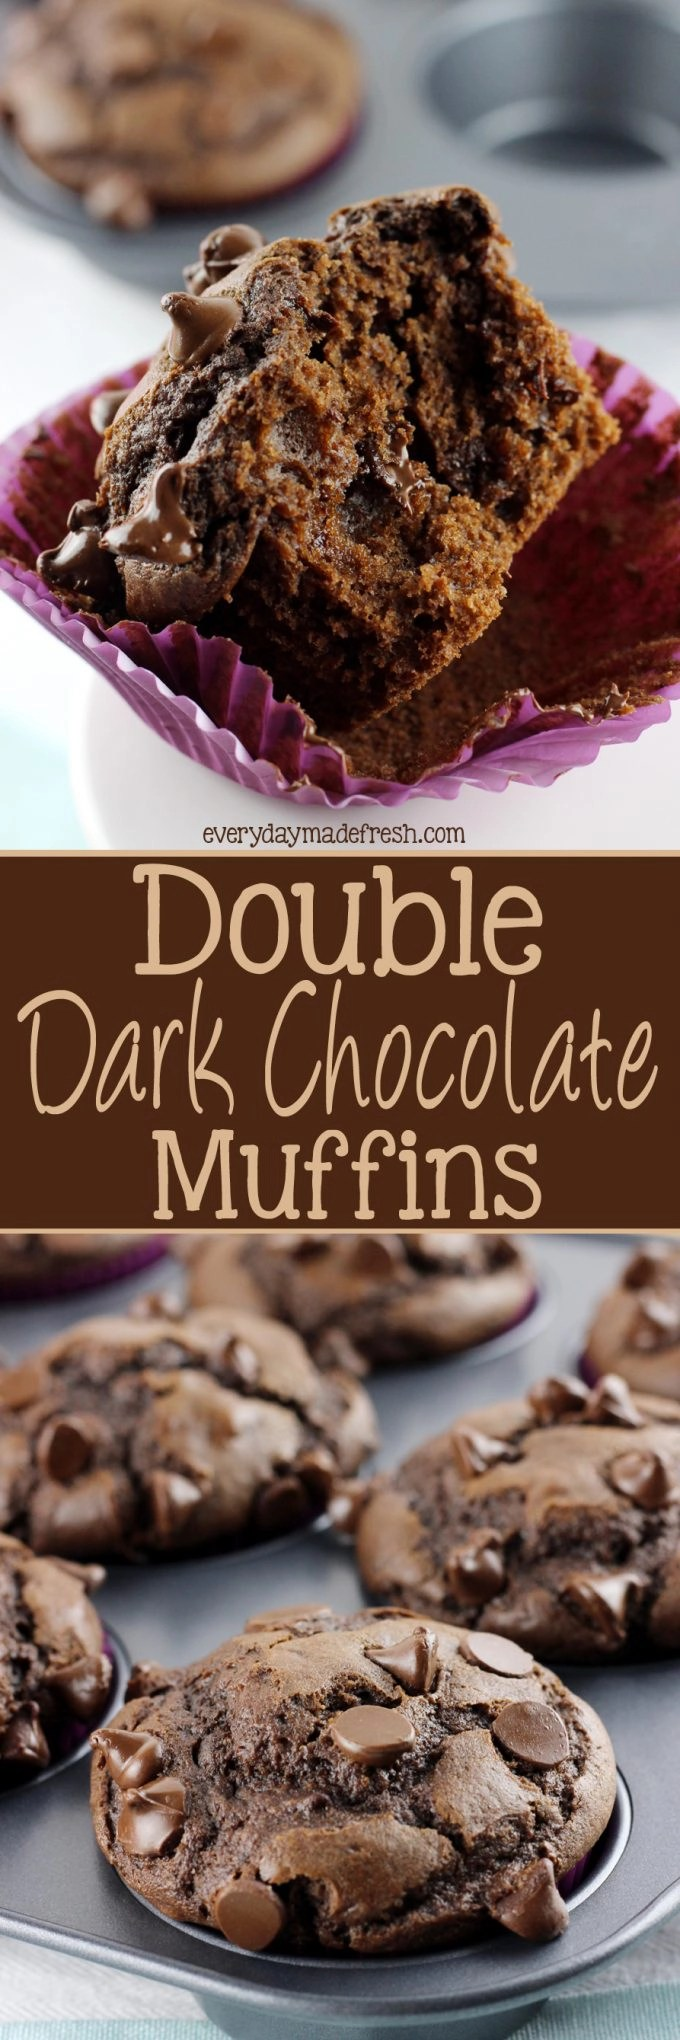 These Double Dark Chocolate Muffins are loaded with a rich dark chocolate flavor. You'll love the crumbly, moist texture, and find any reason to eat one!   EverydayMadeFresh.com